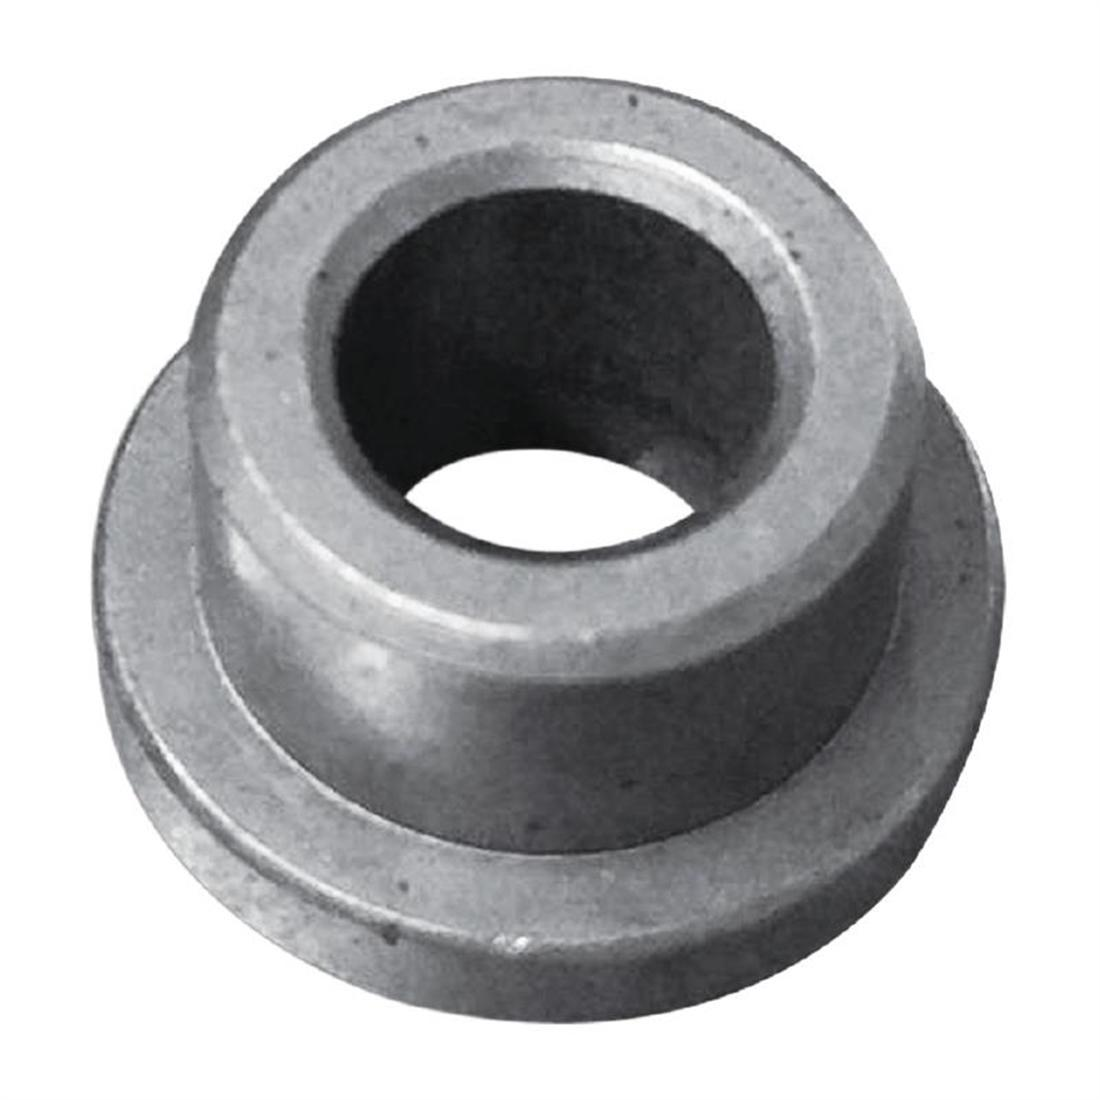 Buffalo Bearing for CM289 Upright Ice Cream Maker - AG692